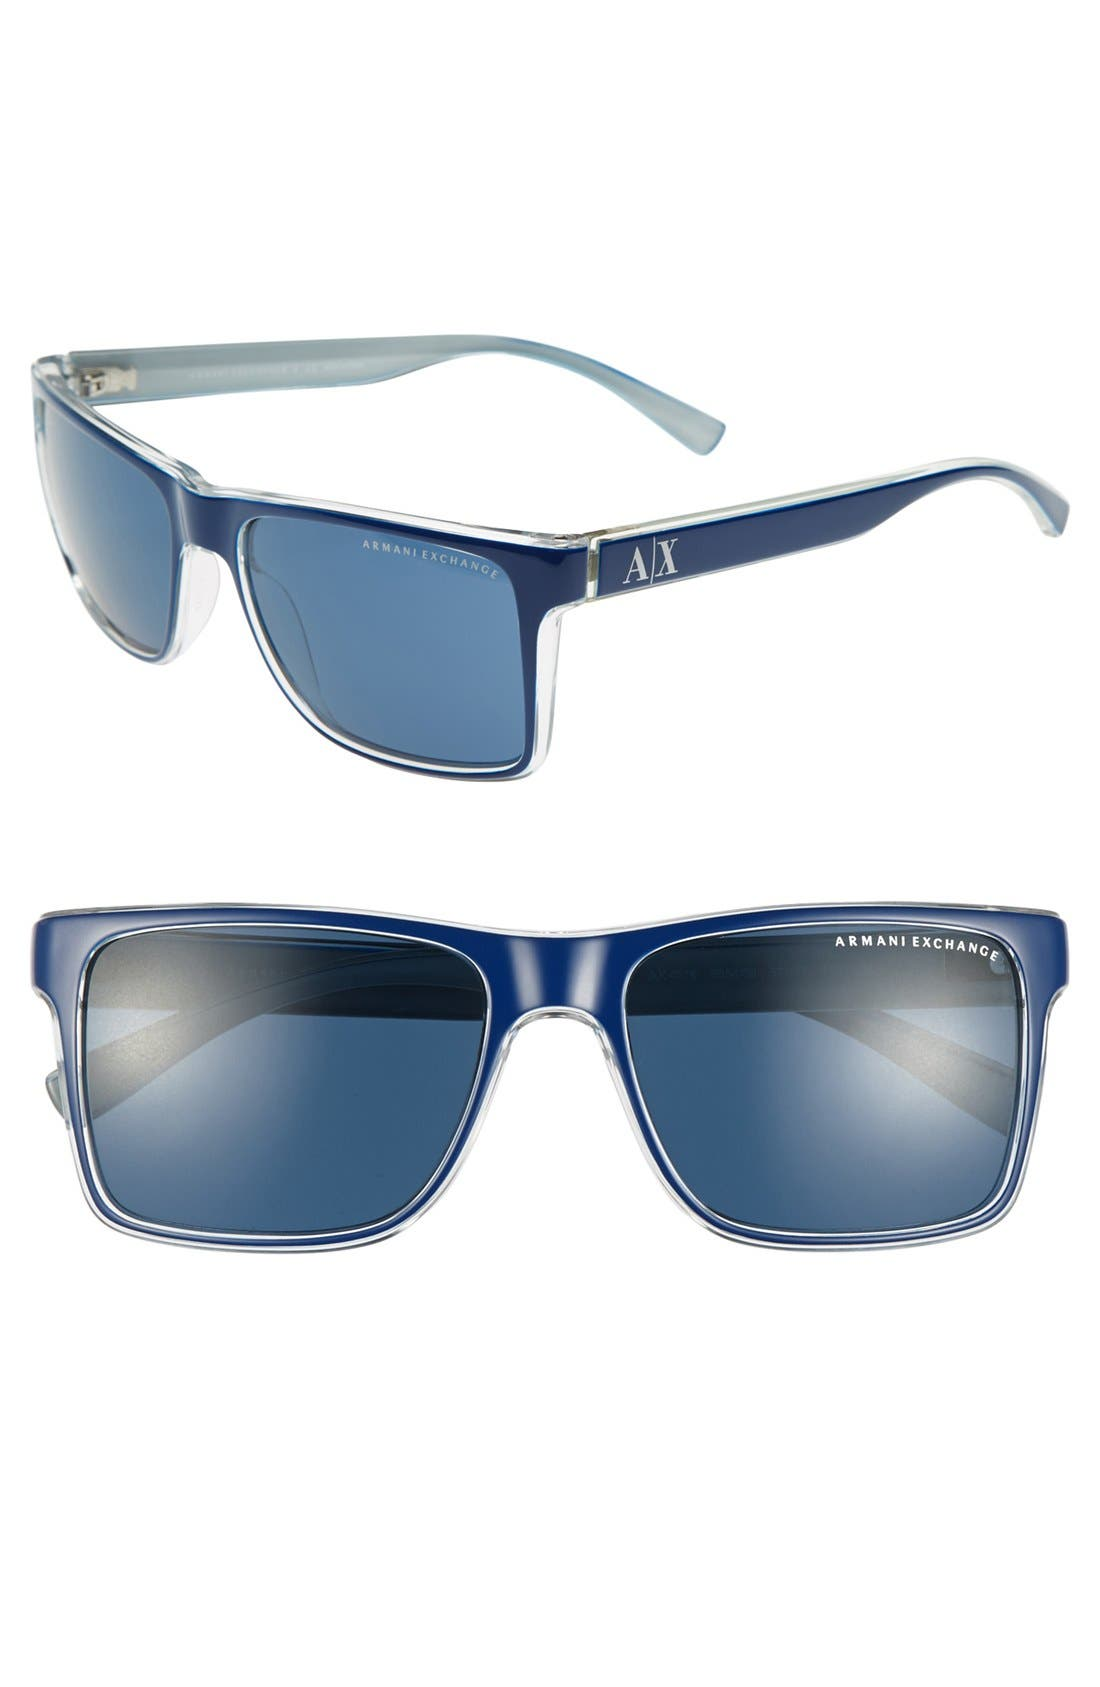 Main Image - AX Armani Exchange 'Forever Young' Square Logo 57mm Sunglasses